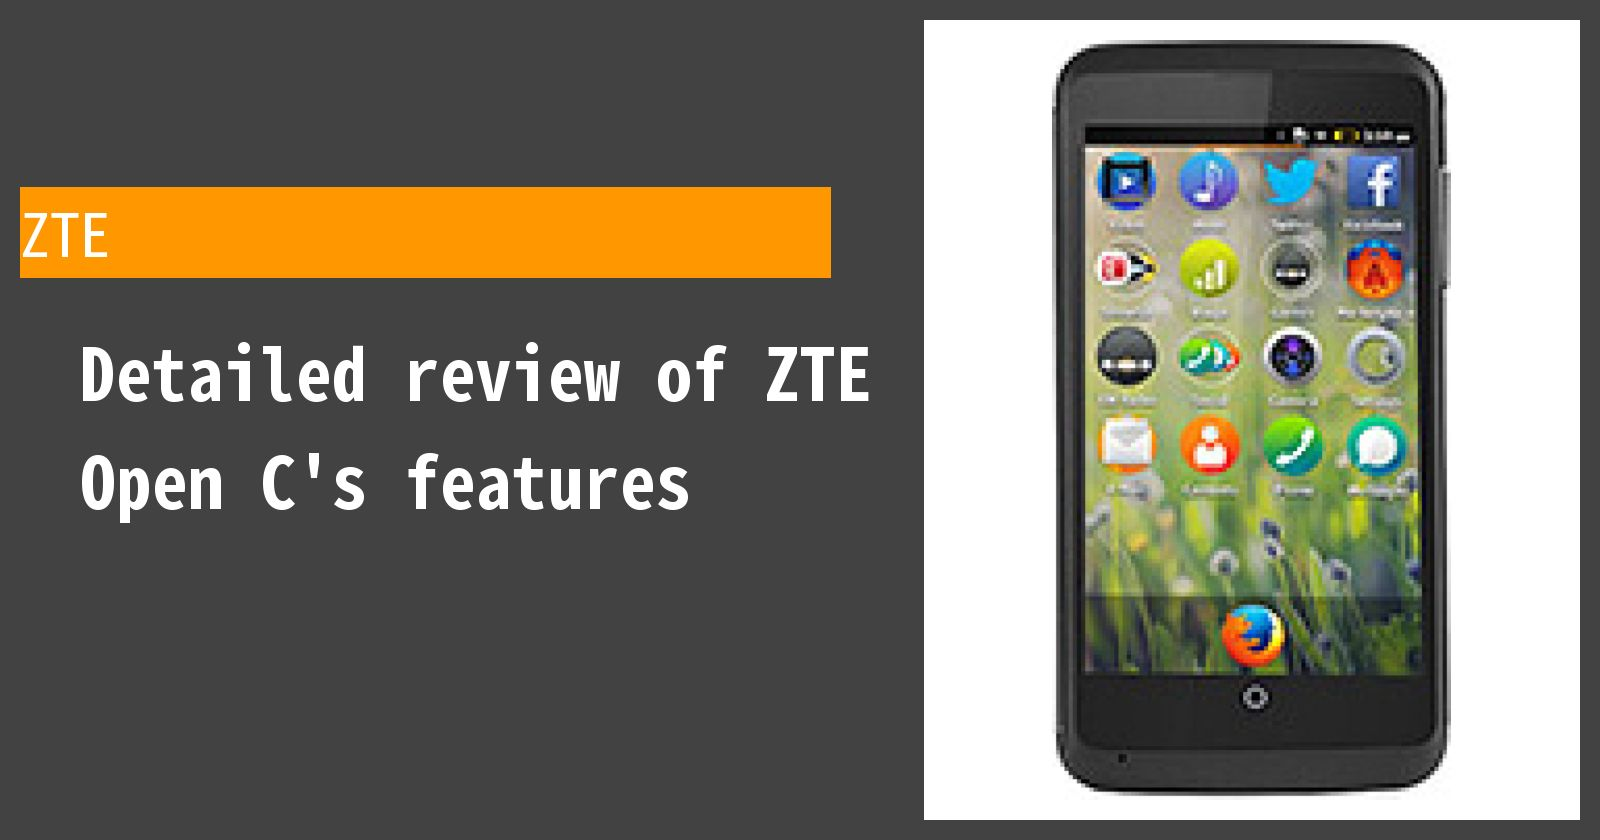 Detailed review of ZTE Open C's features